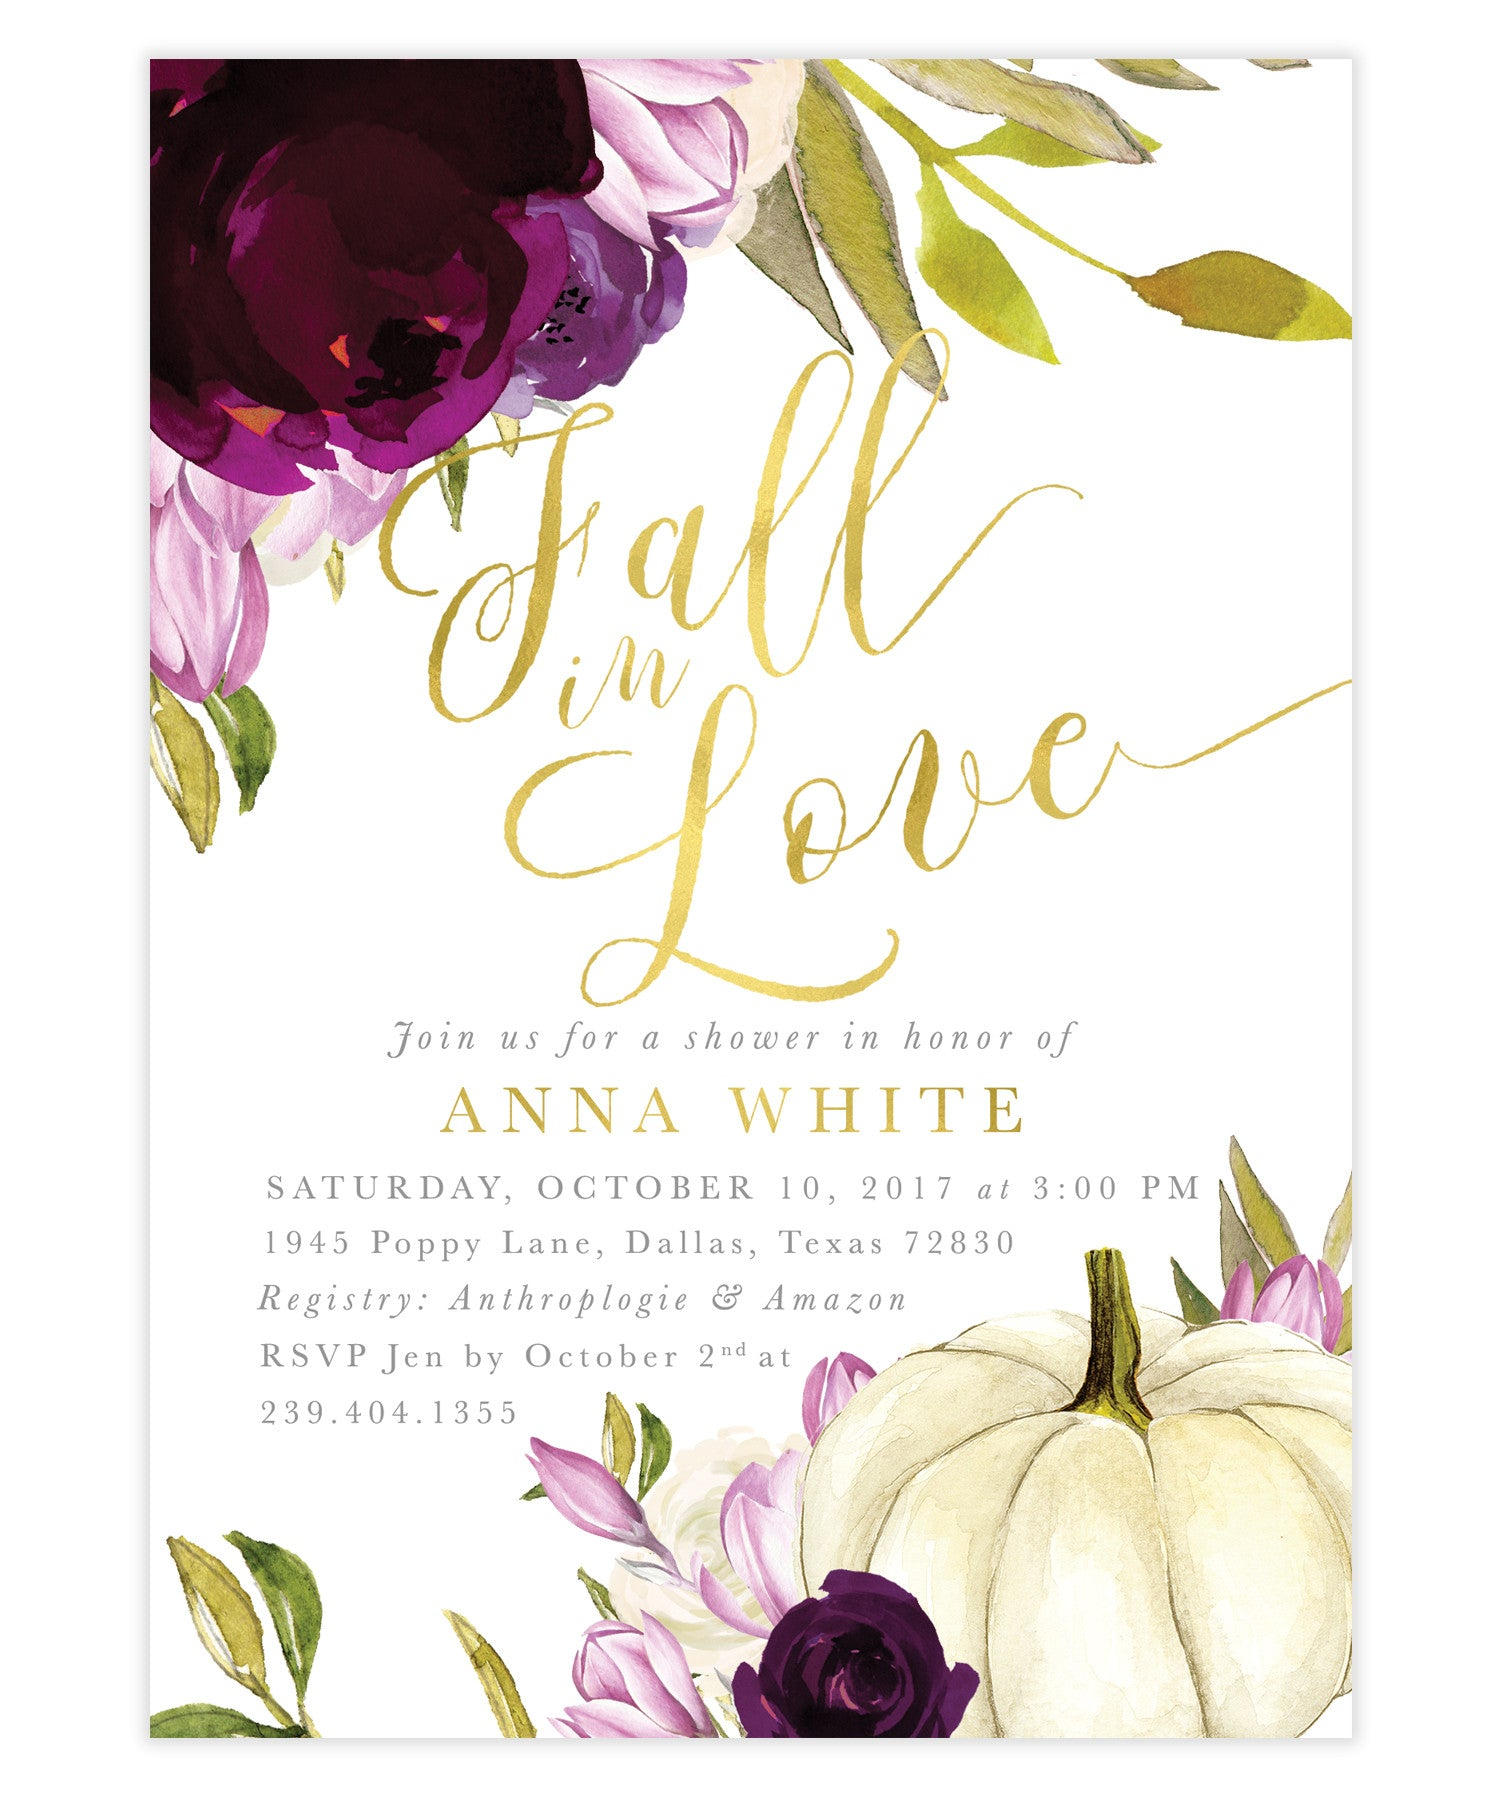 American greetings wedding invitations picture ideas references american greetings wedding invitations wedding invitations american greetings american greetings wedding shower invitations fall in love kristyandbryce Images